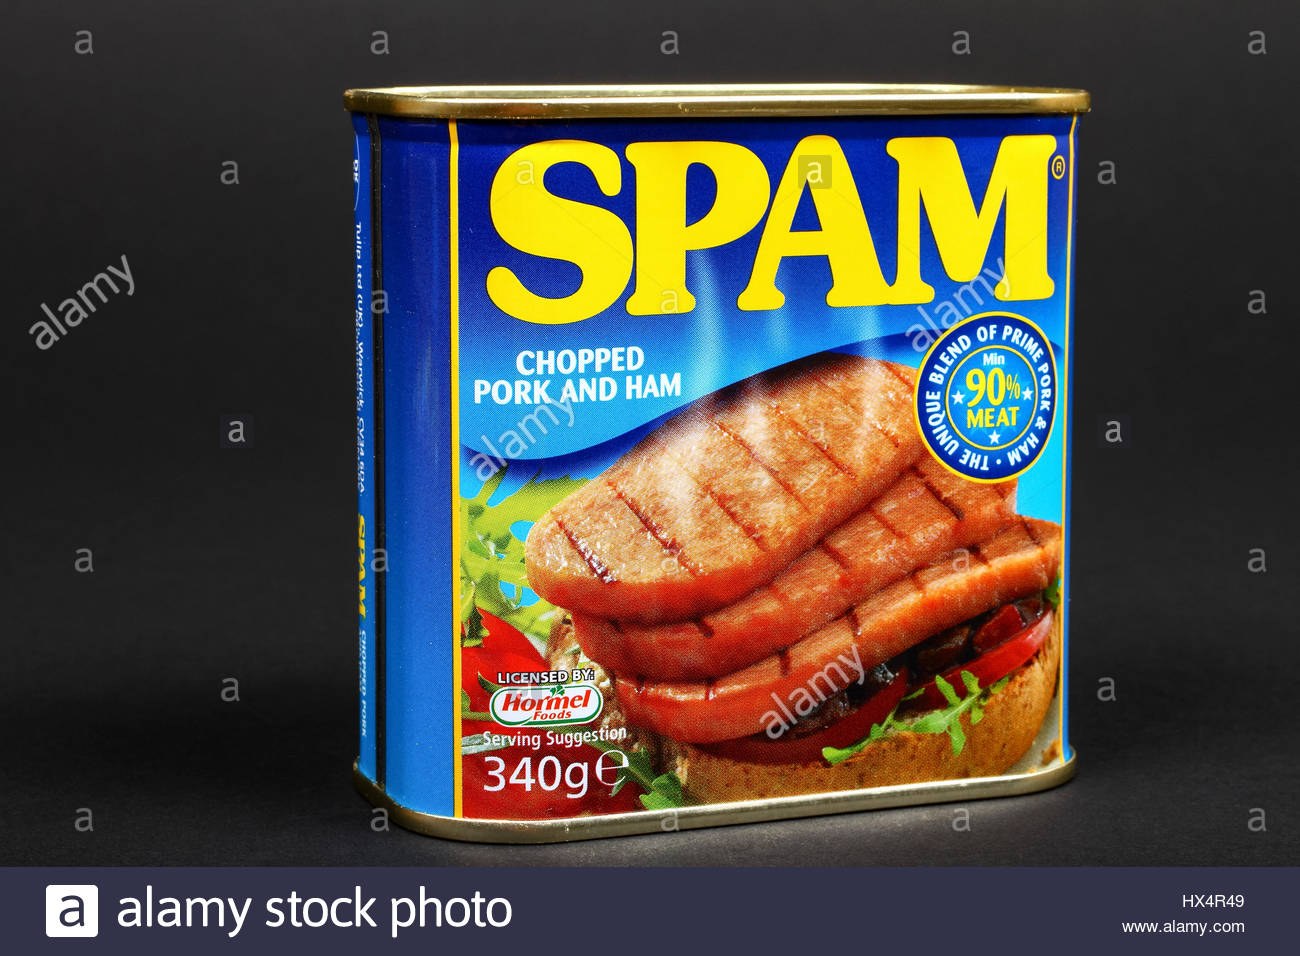 Hormel tinned Spam chopped pork and ham luncheon meat isolated on 1300x956